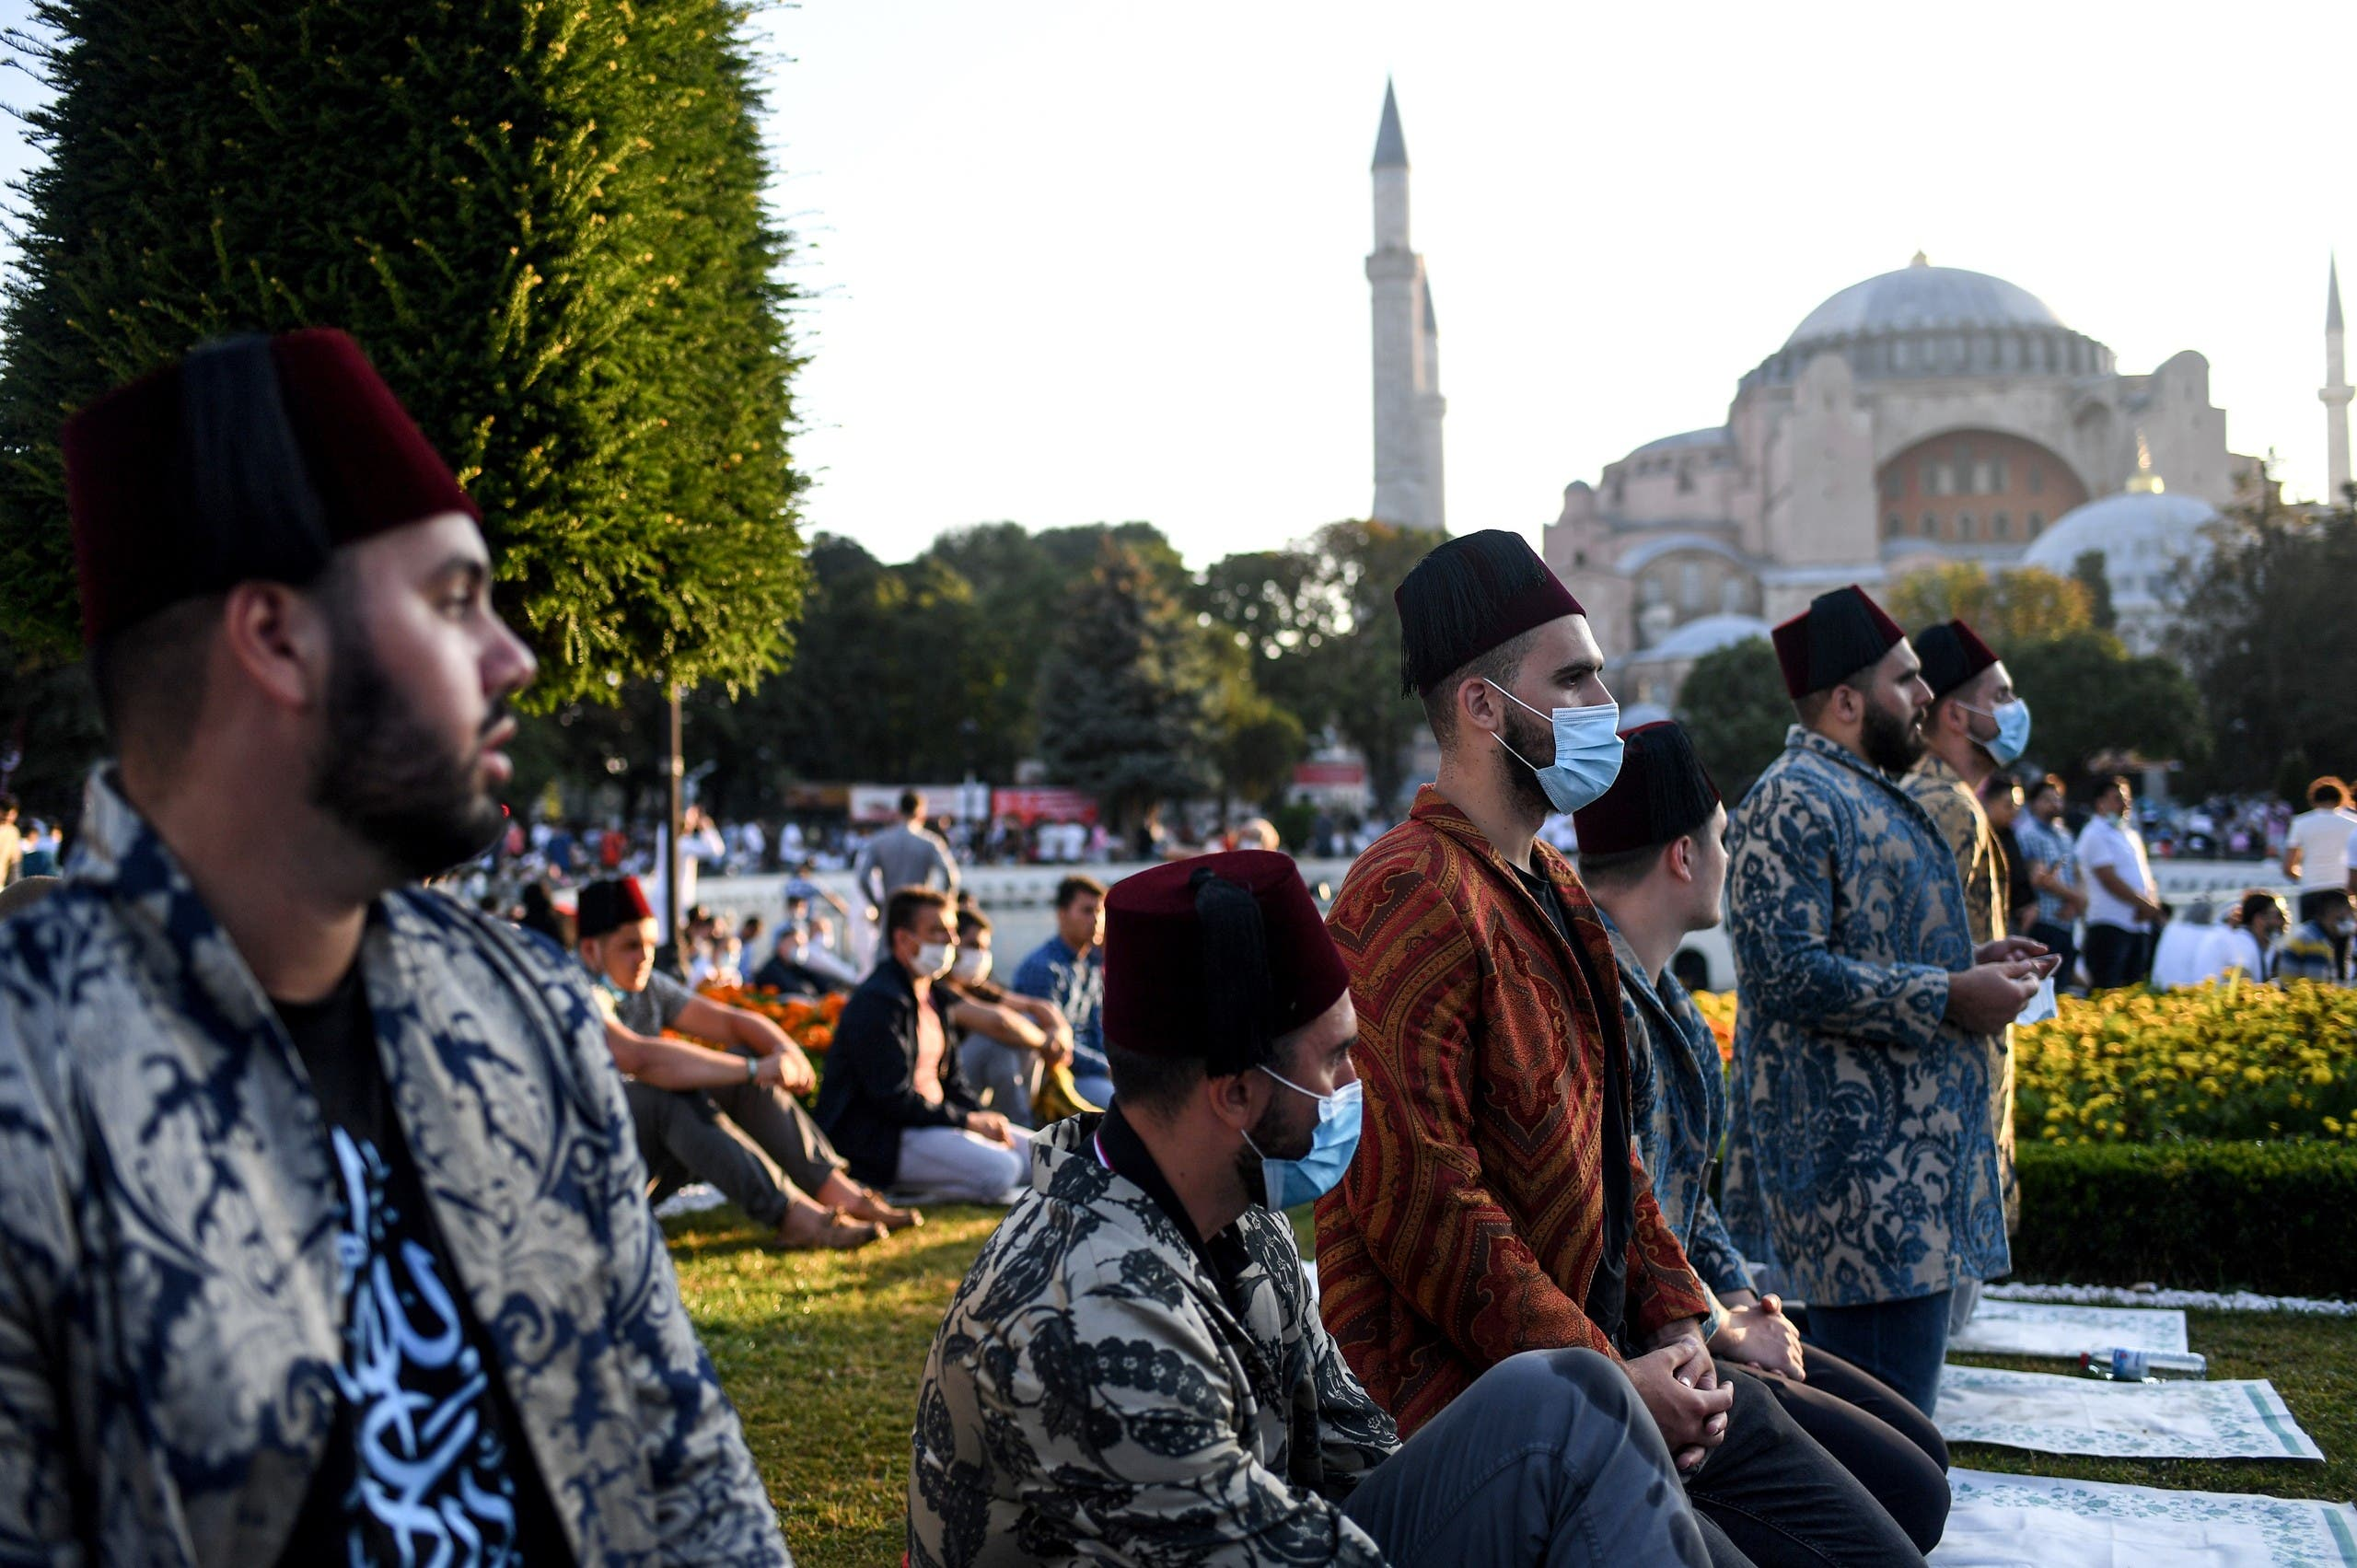 Worshippers take part in the Eid al-Adha prayers outside Hagia Sophia in Istanbul on July 31, 2020. (AFP)